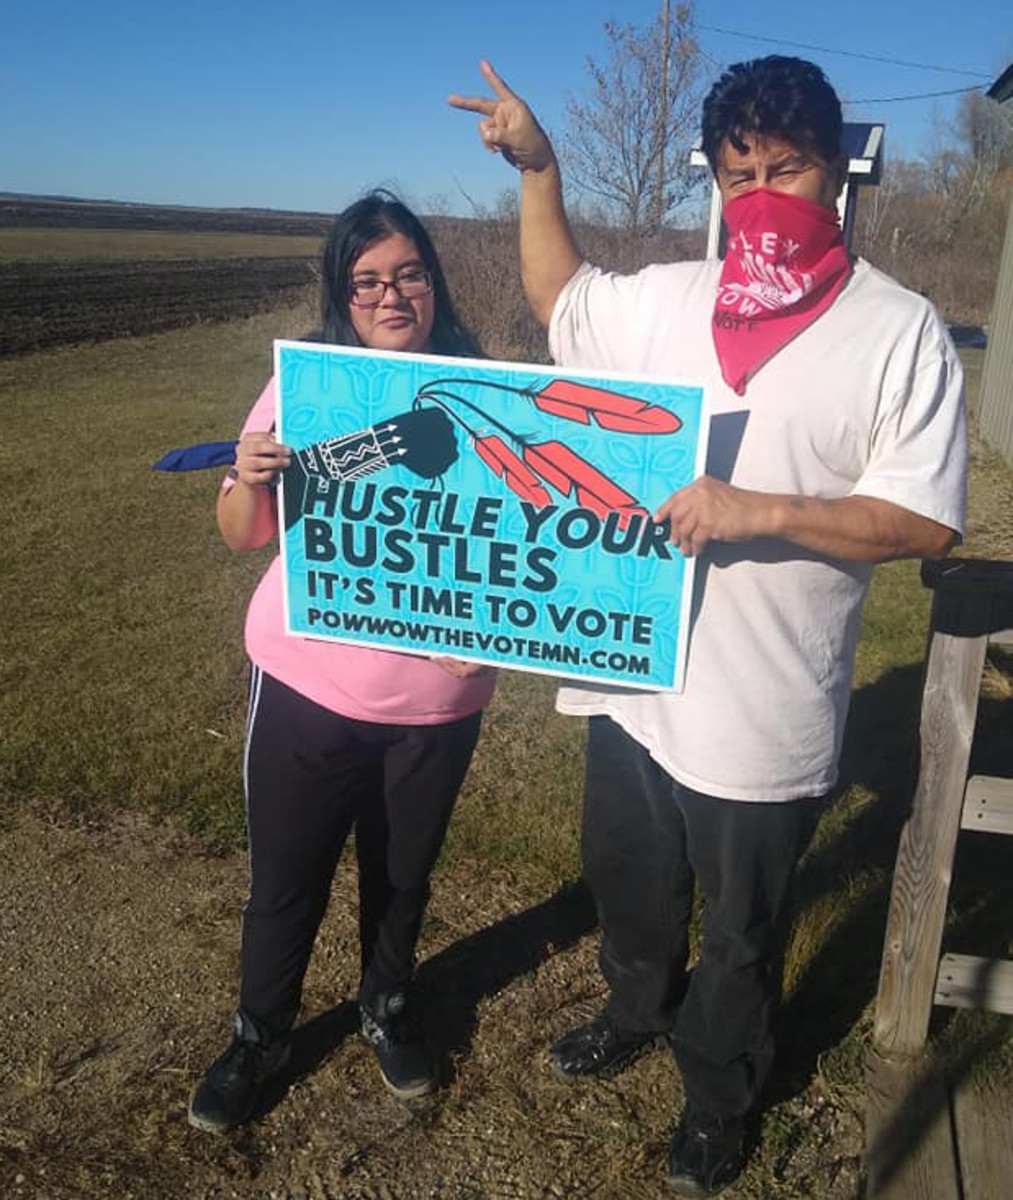 Chuck and Zoey Thompson of the White Earth Ojibwe tribe voted for the first time. (Photo courtesy Winona LaDuke)